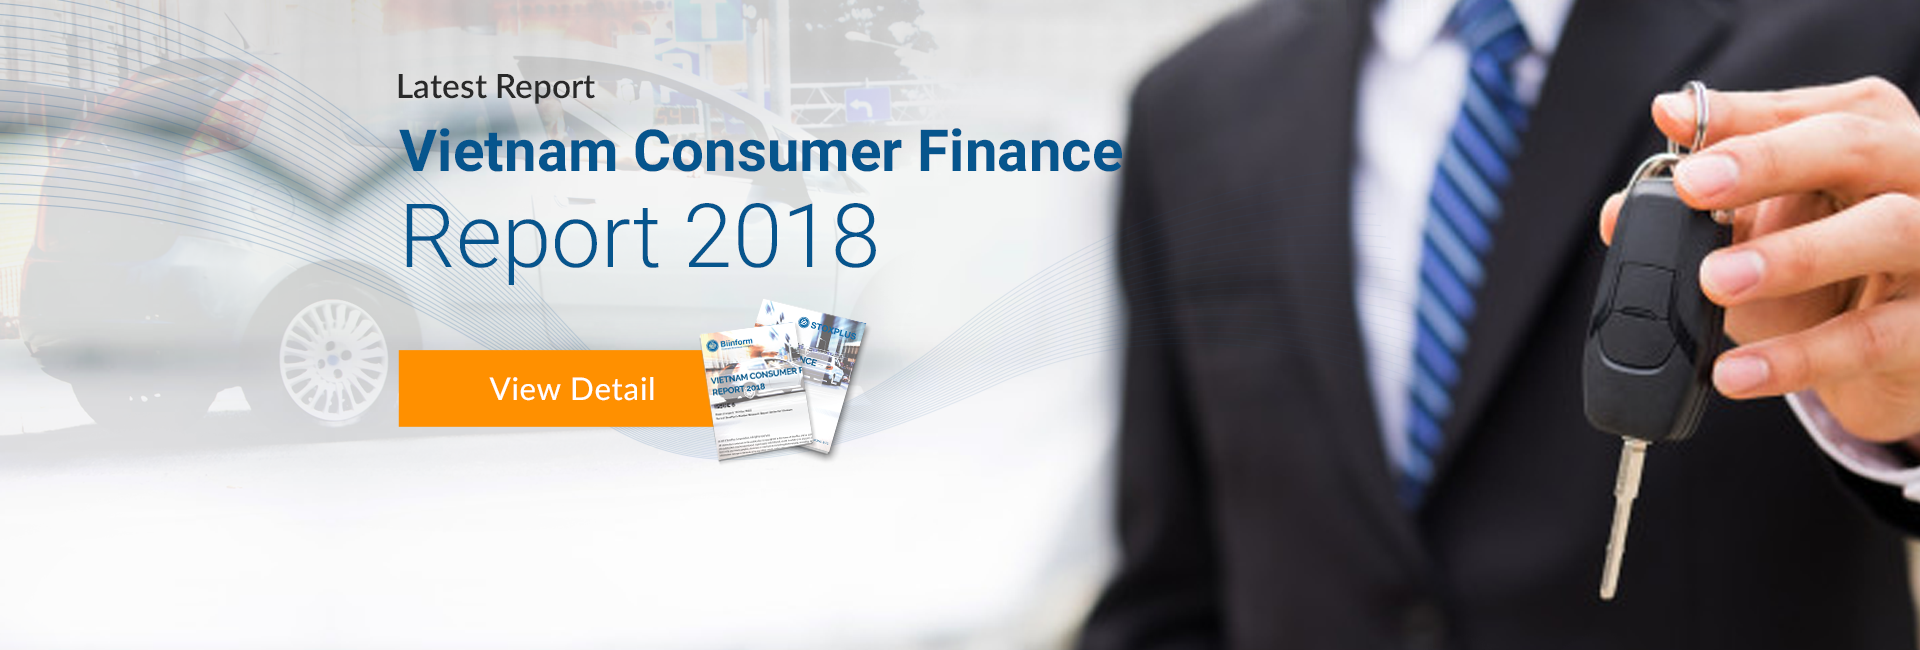 Vietnam Consumer Finance Report 2018